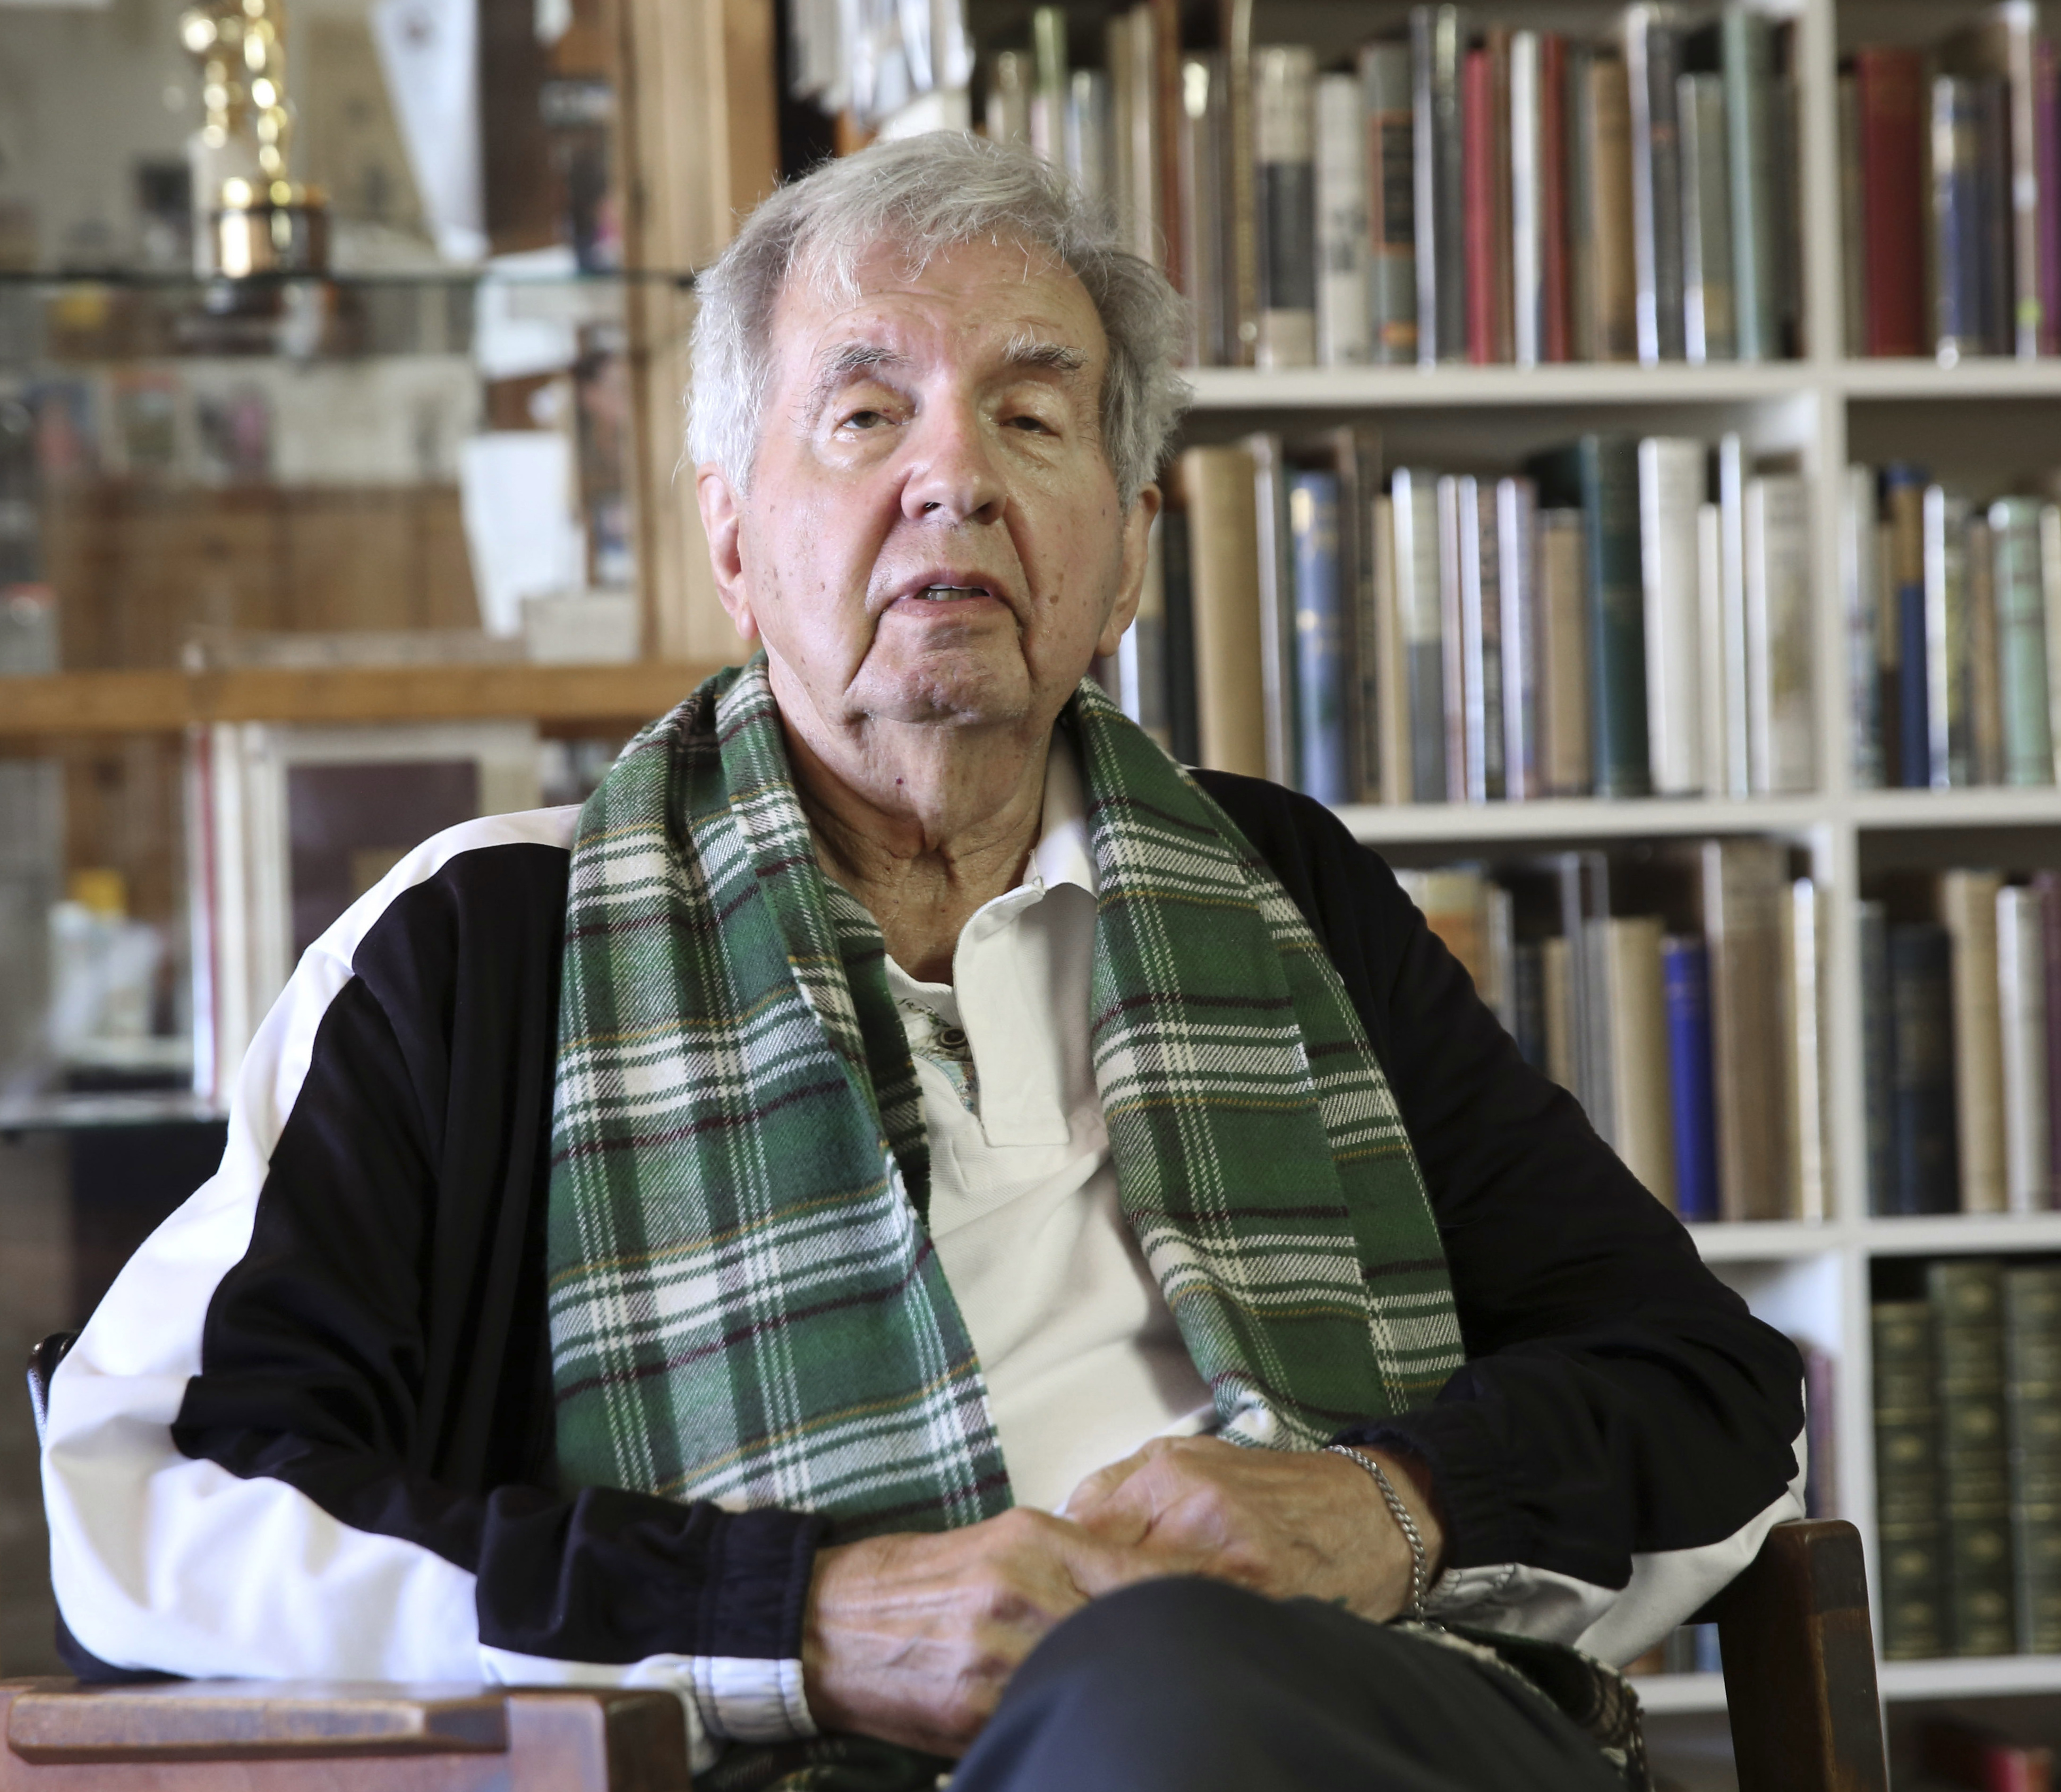 Writer Larry McMurtry is also the founder and owner of the Booked Up bookstore in Archer City, Texas.